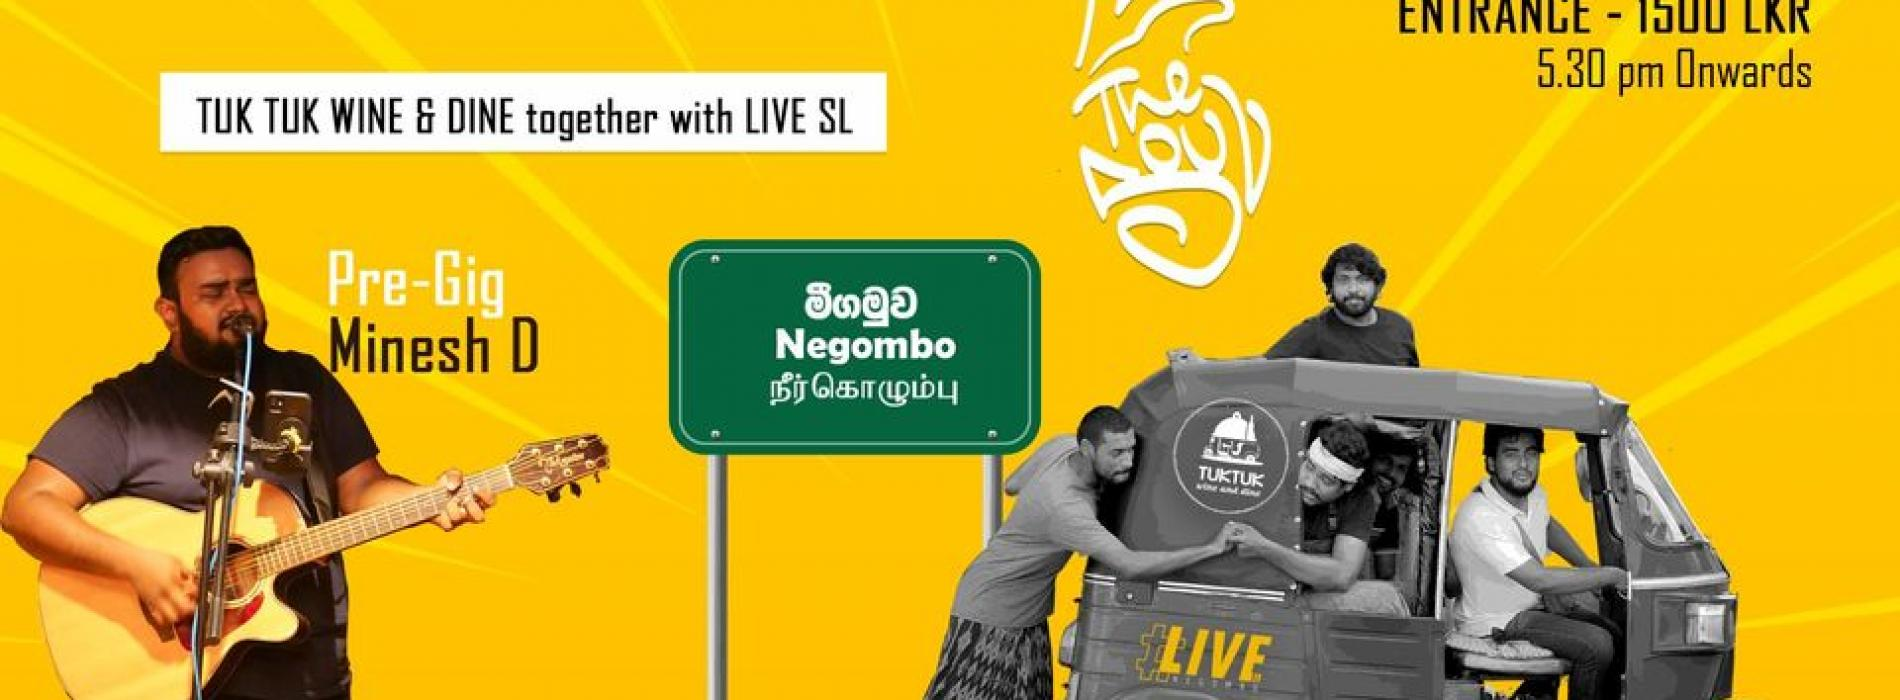 Soul Live in concert( Pre Gig By Minesh D & Afterparty by DownTown)